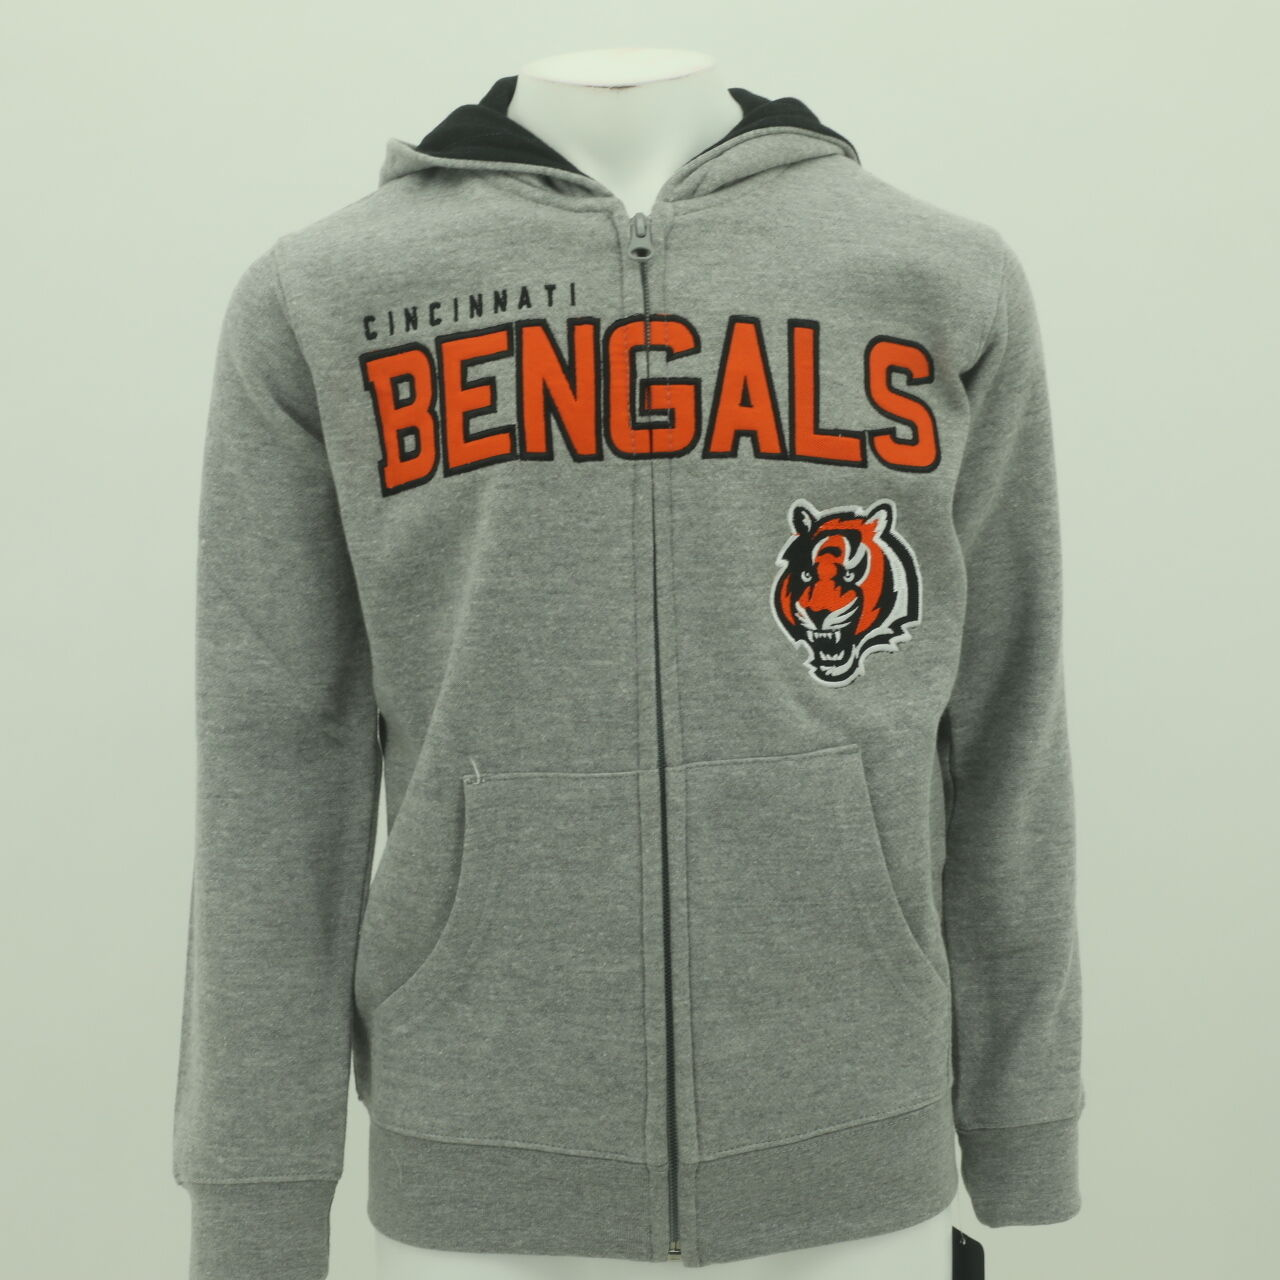 Wholesale NFL Cincinnati Bengals Youth Size Hooded Sweatshirt Full Zipper New  hot sale